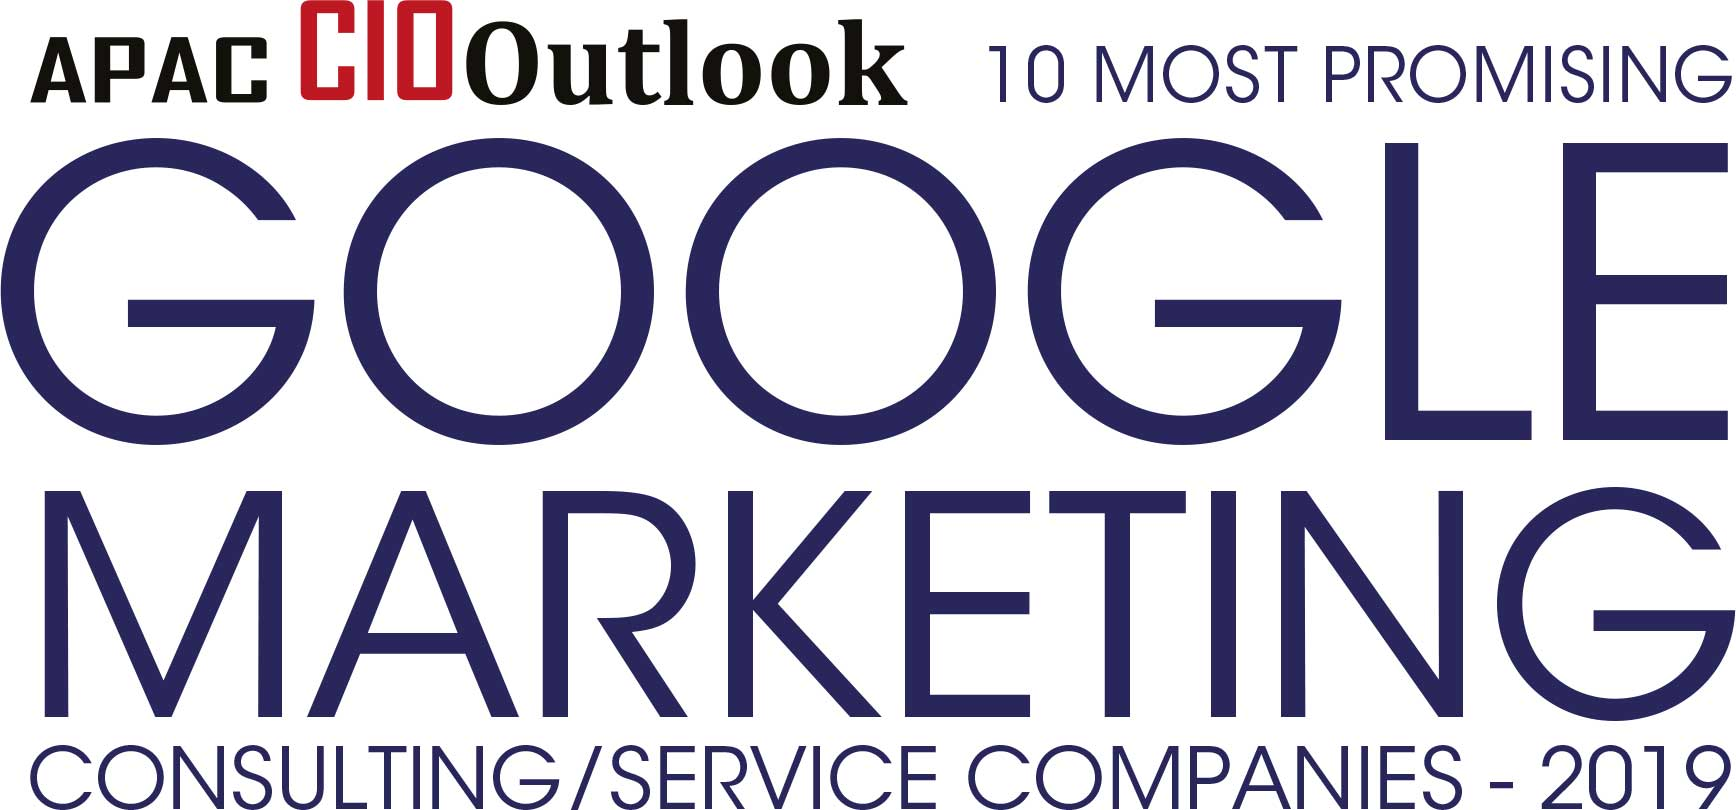 Top 10 Most Promising Google Marketing Consulting/Service Companies - 2019